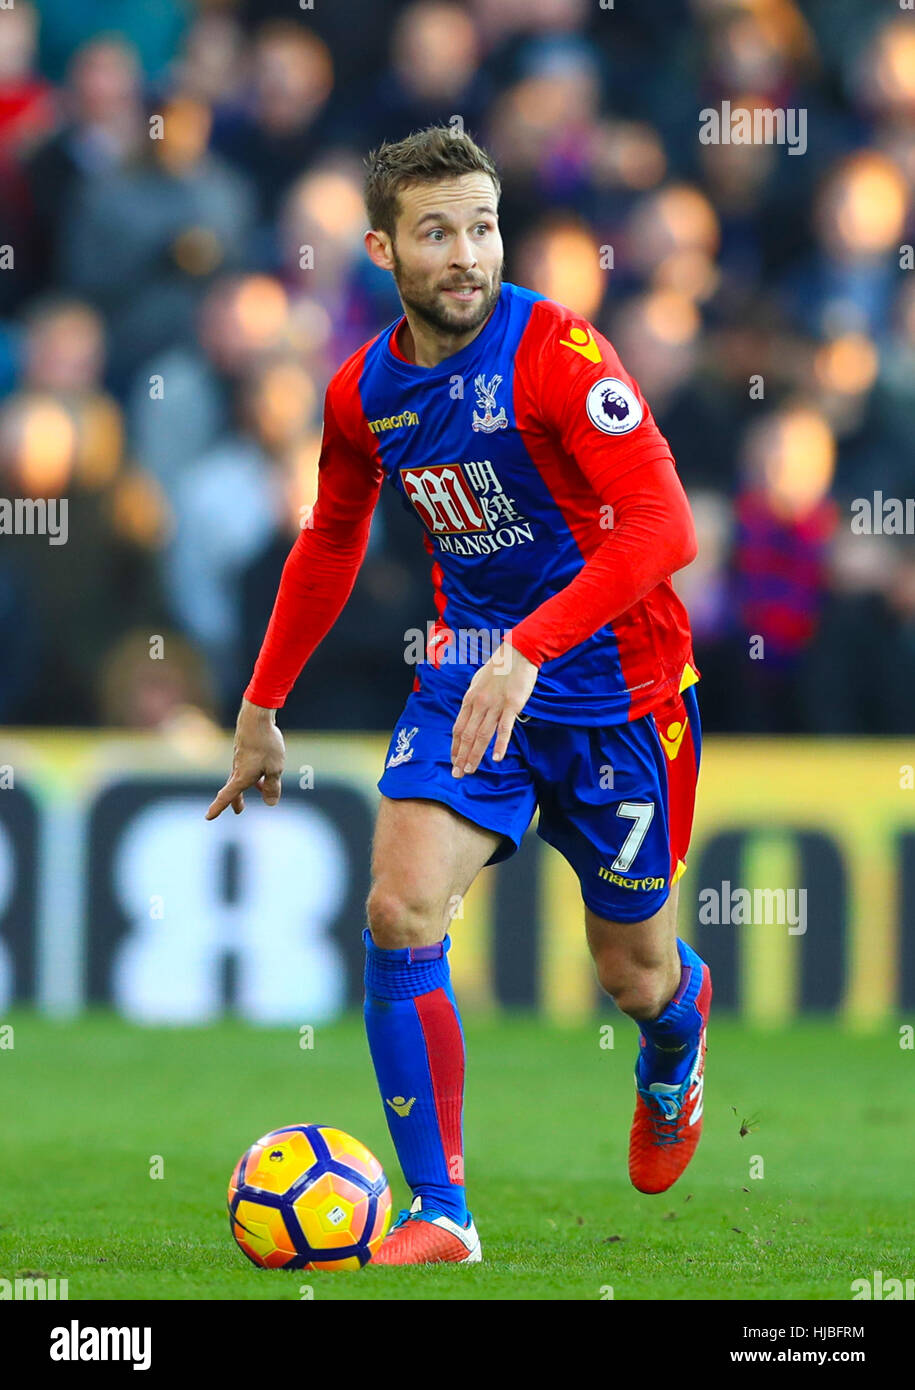 Yohan Cabaye Crystal Palace Stock Royalty Free Image